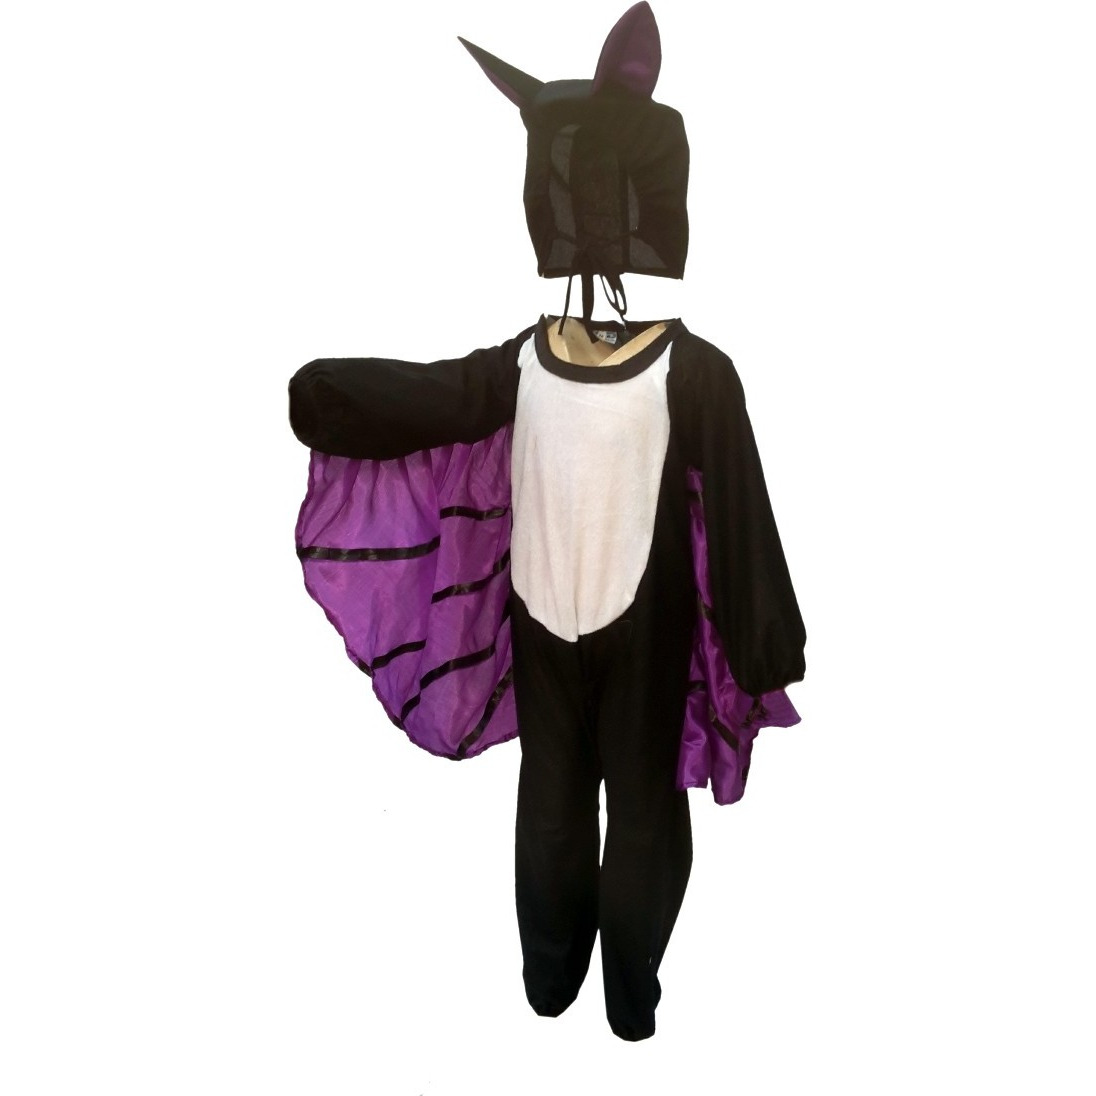 KFD Bat fancy dress for kids,Bird Costume for School Annual function/Theme Party/Competition/Stage Shows Dress